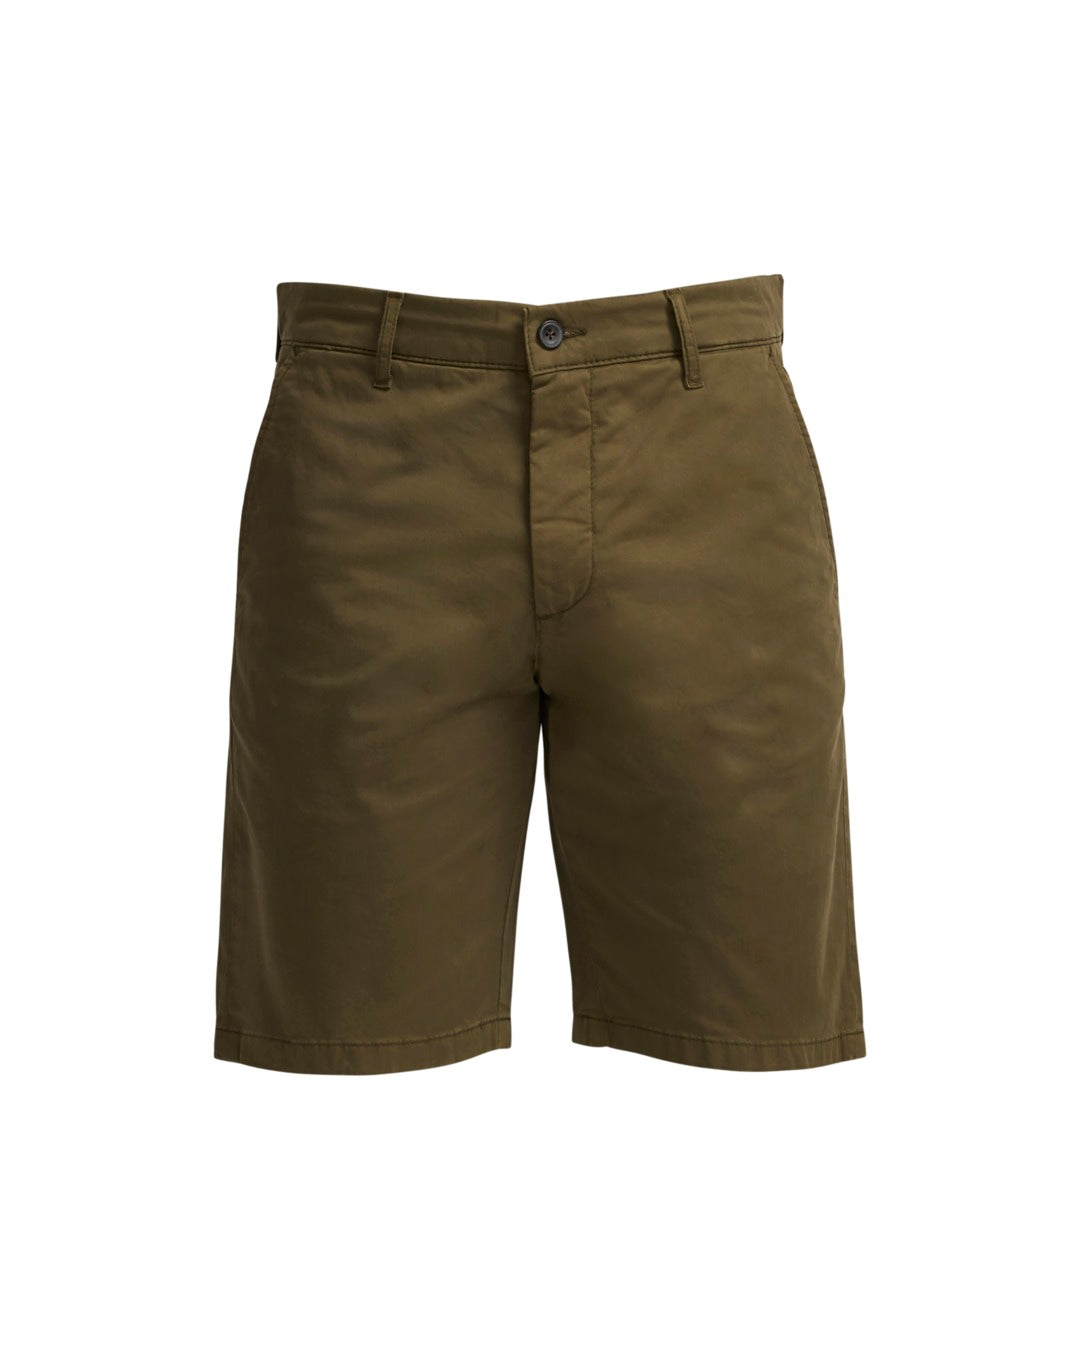 No Nationality Crown Shorts - Olive